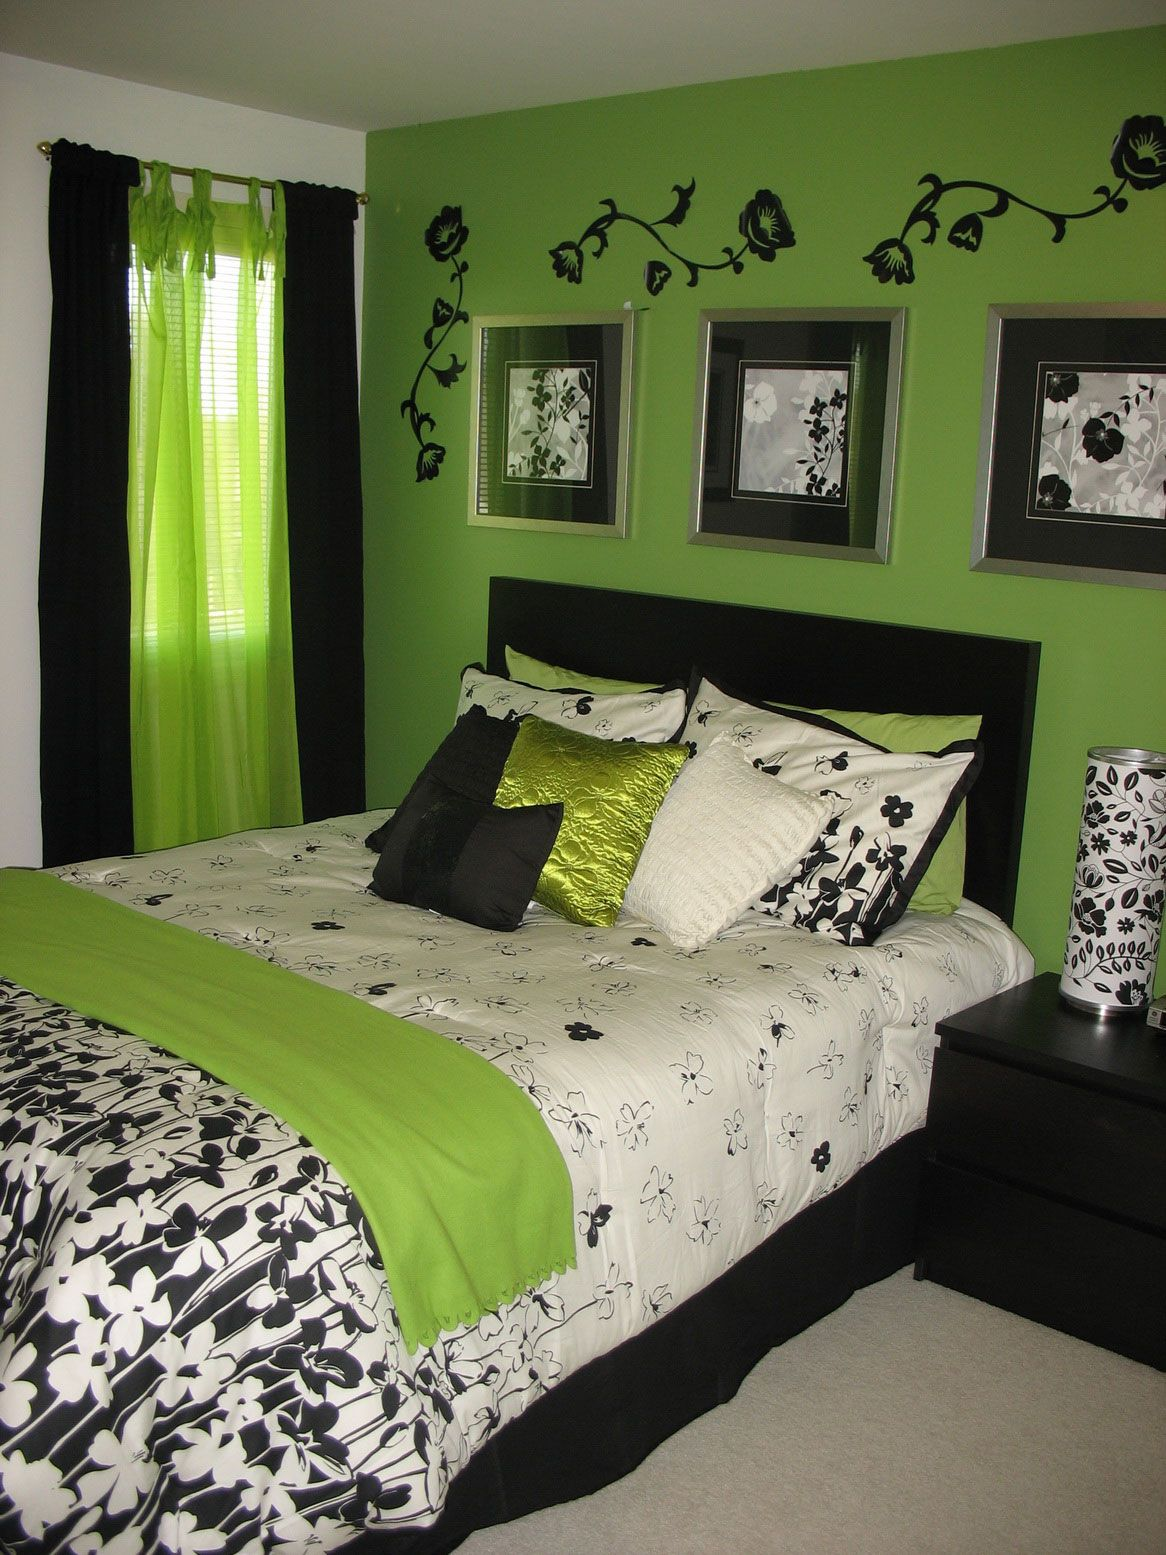 Paint colors for adult bedrooms - Young Adult Bedroom Ideas Google Search Would Like Blue Or Purple Instead Of Green For